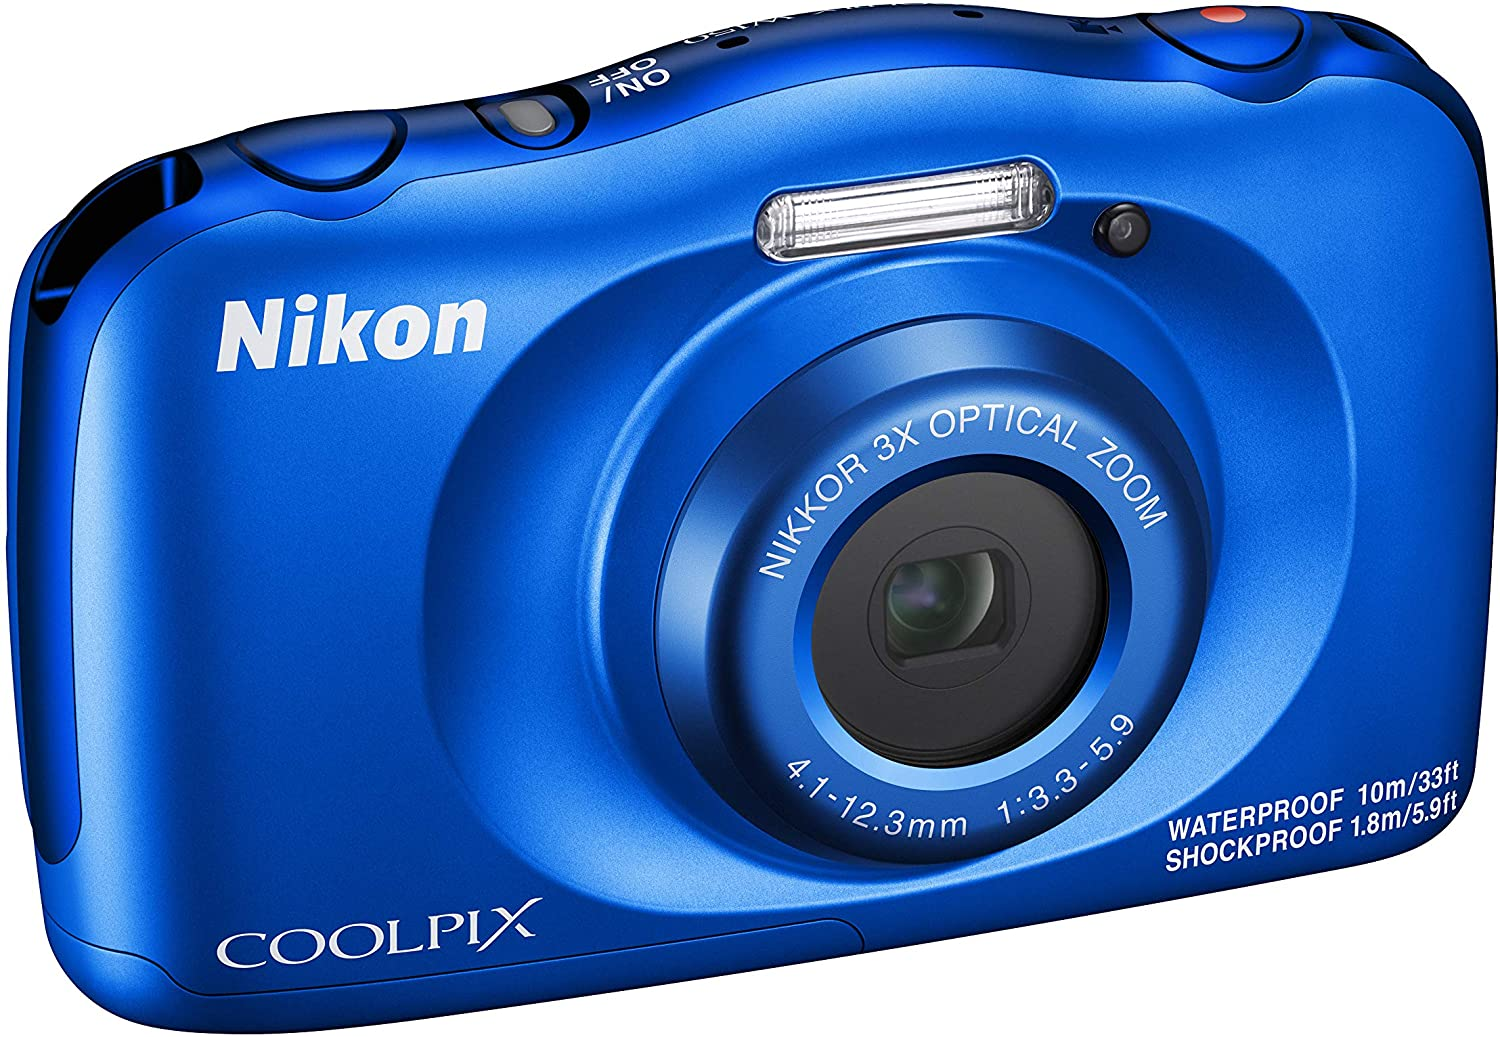 Coolpix W150 Digital Camera | Nikon